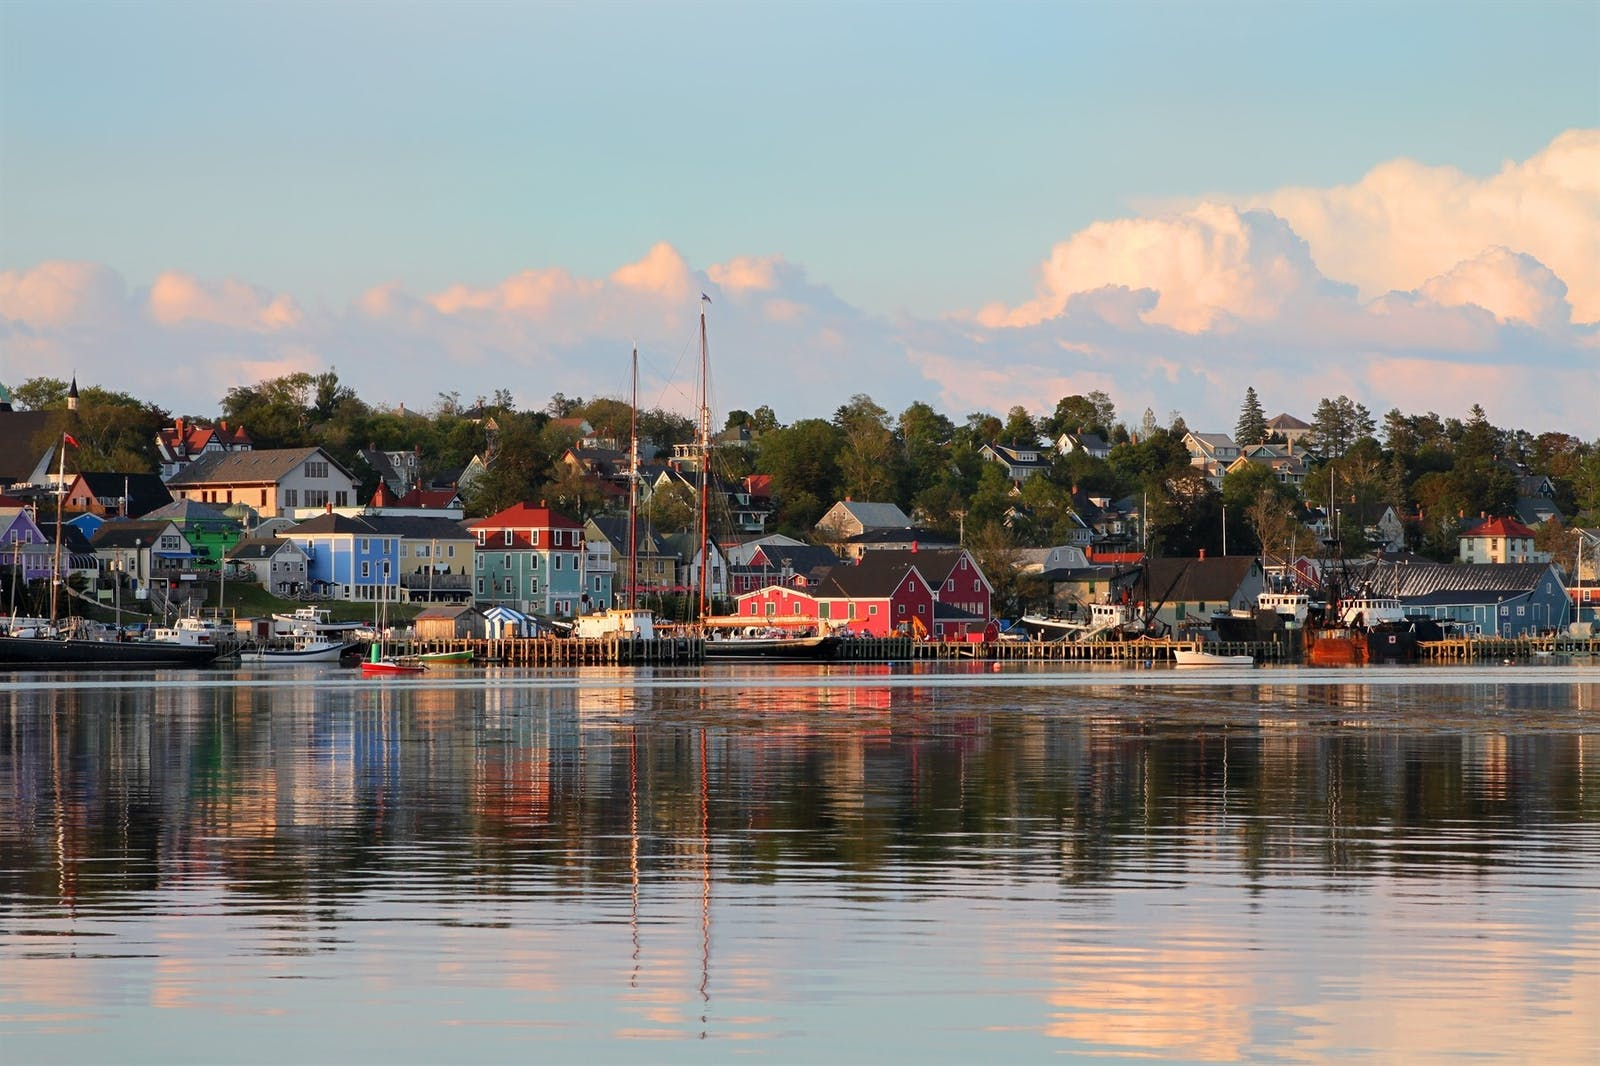 view of the famous harbor front of lunenburg